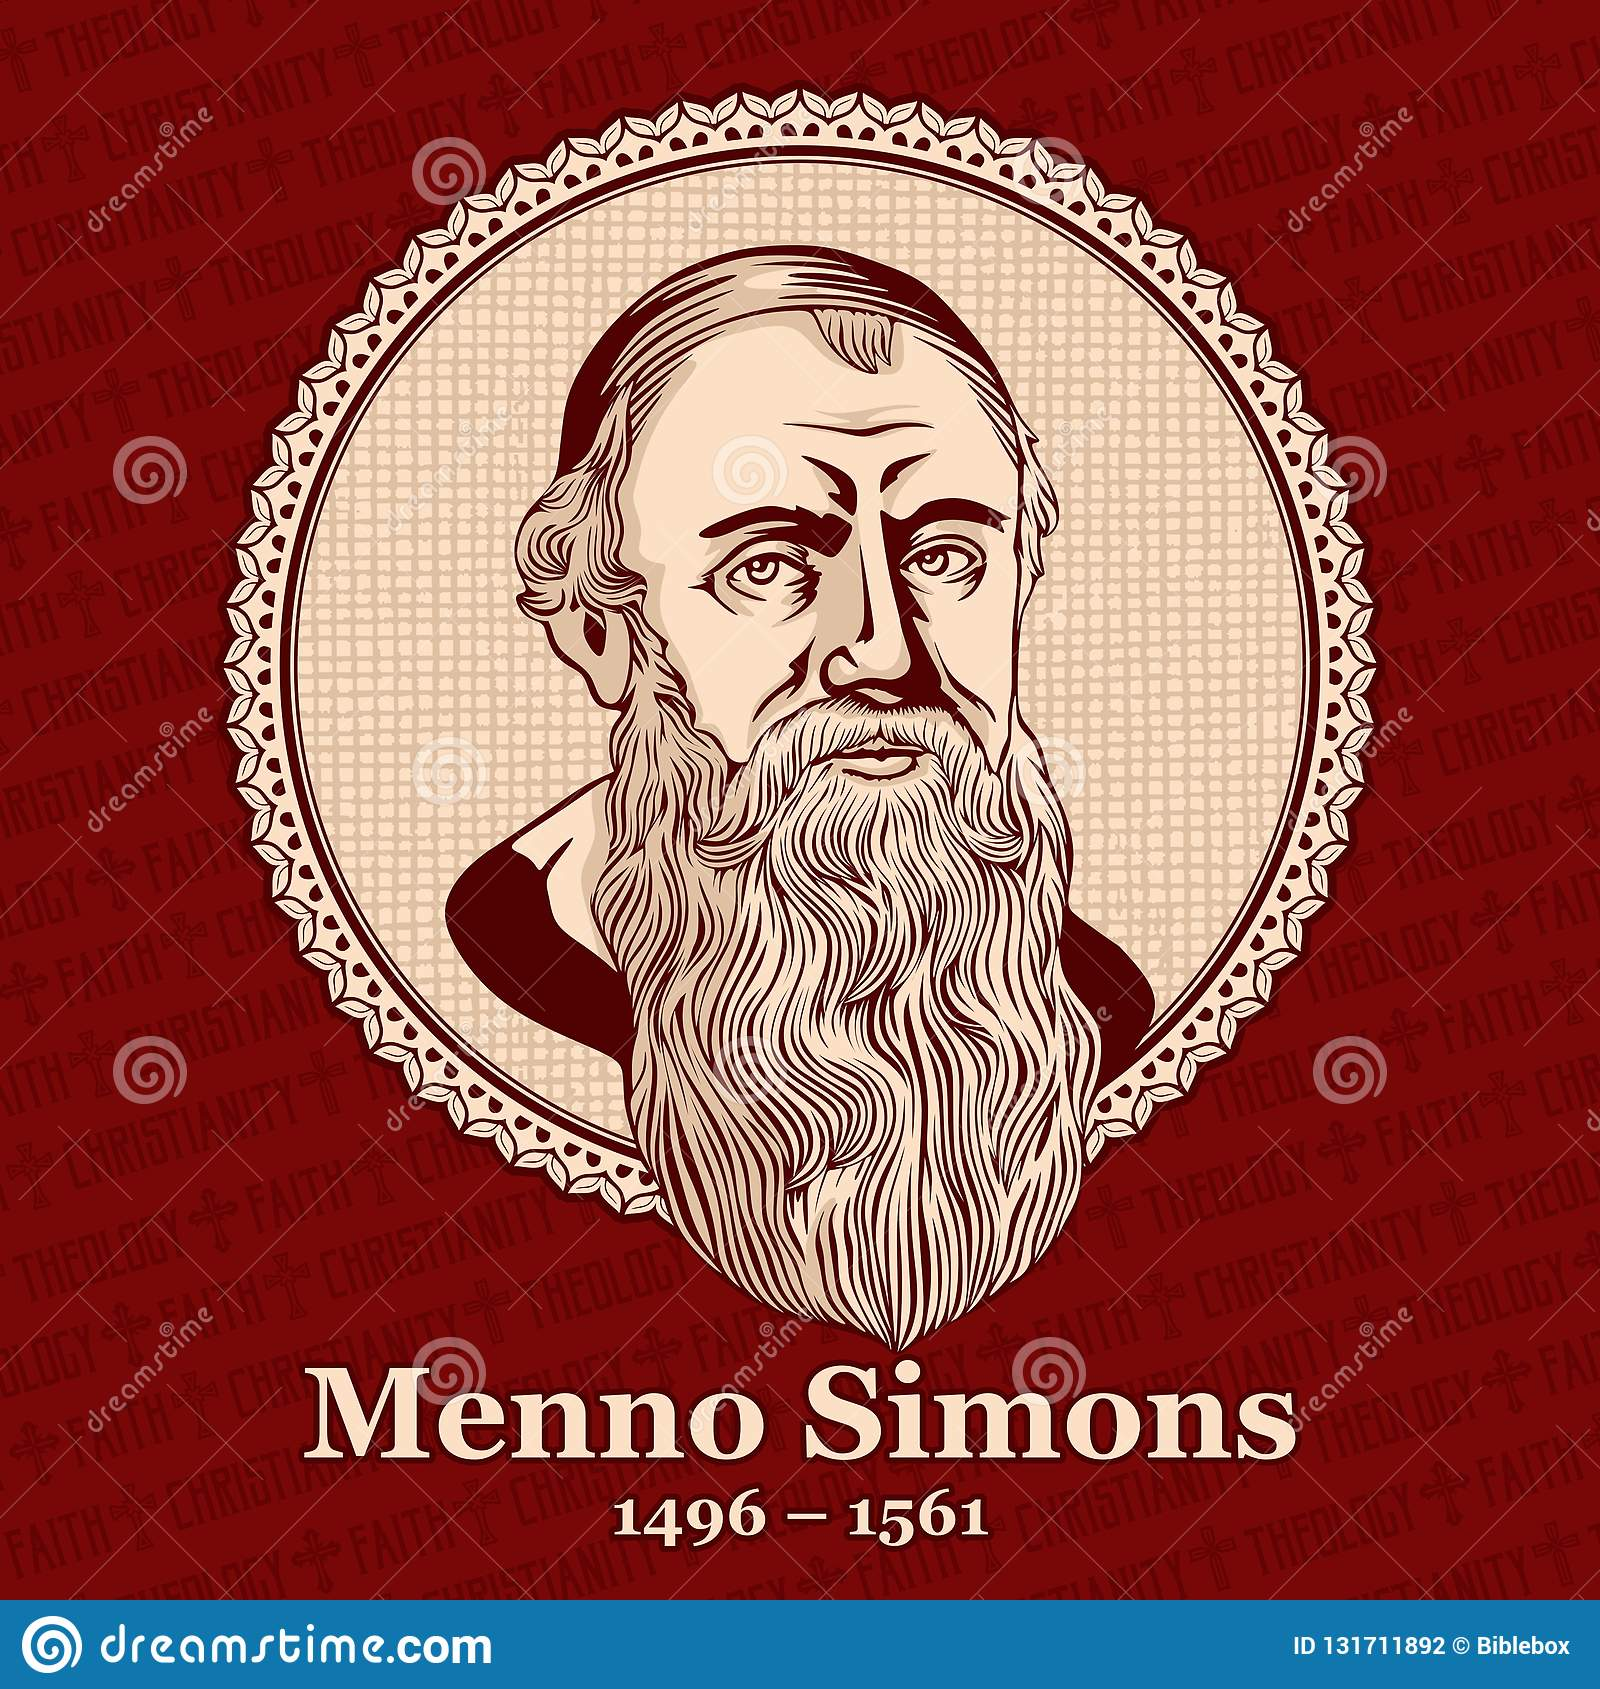 Menno Simons 1496 – 1561 was an outstanding leader of the Anabaptist  movement in